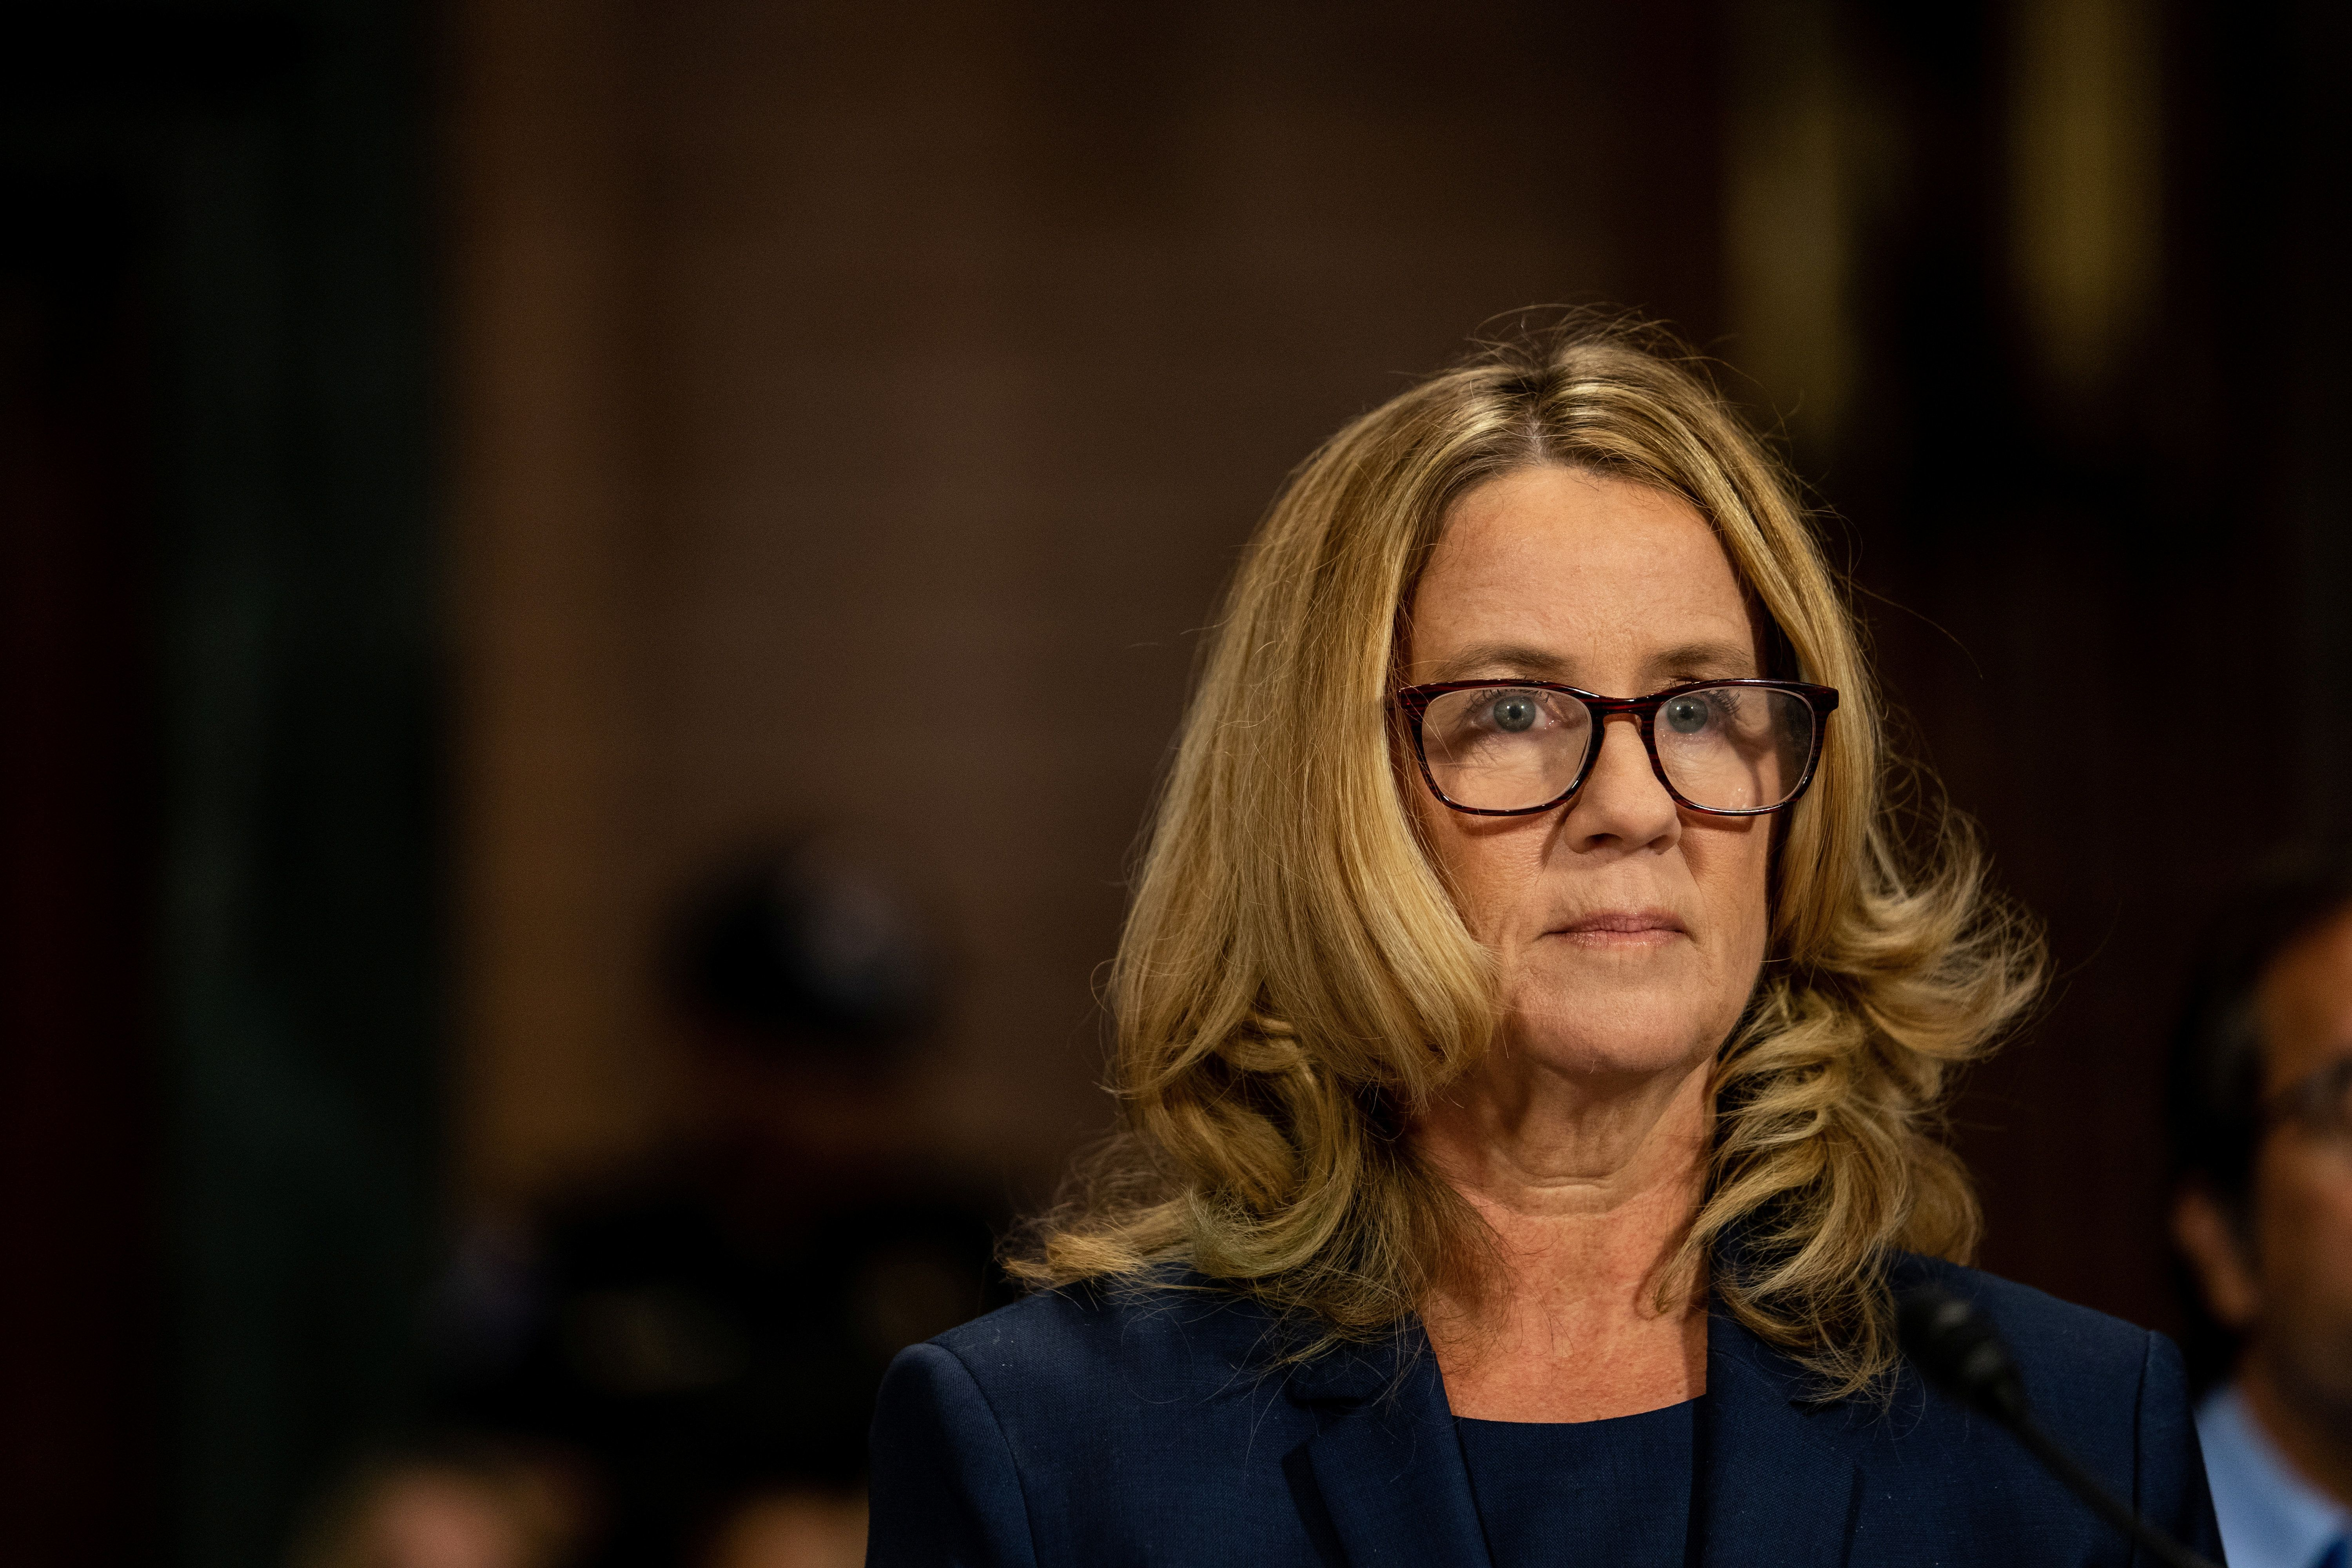 Christine Blasey Ford attends a hearing before the Senate Judiciary Committee about sexual assault allegations against Supreme Court nominee Judge Brett M. Kavanaugh on Capitol Hill in Washington, U.S., September 27, 2018. Erin Schaff/Pool via REUTERS